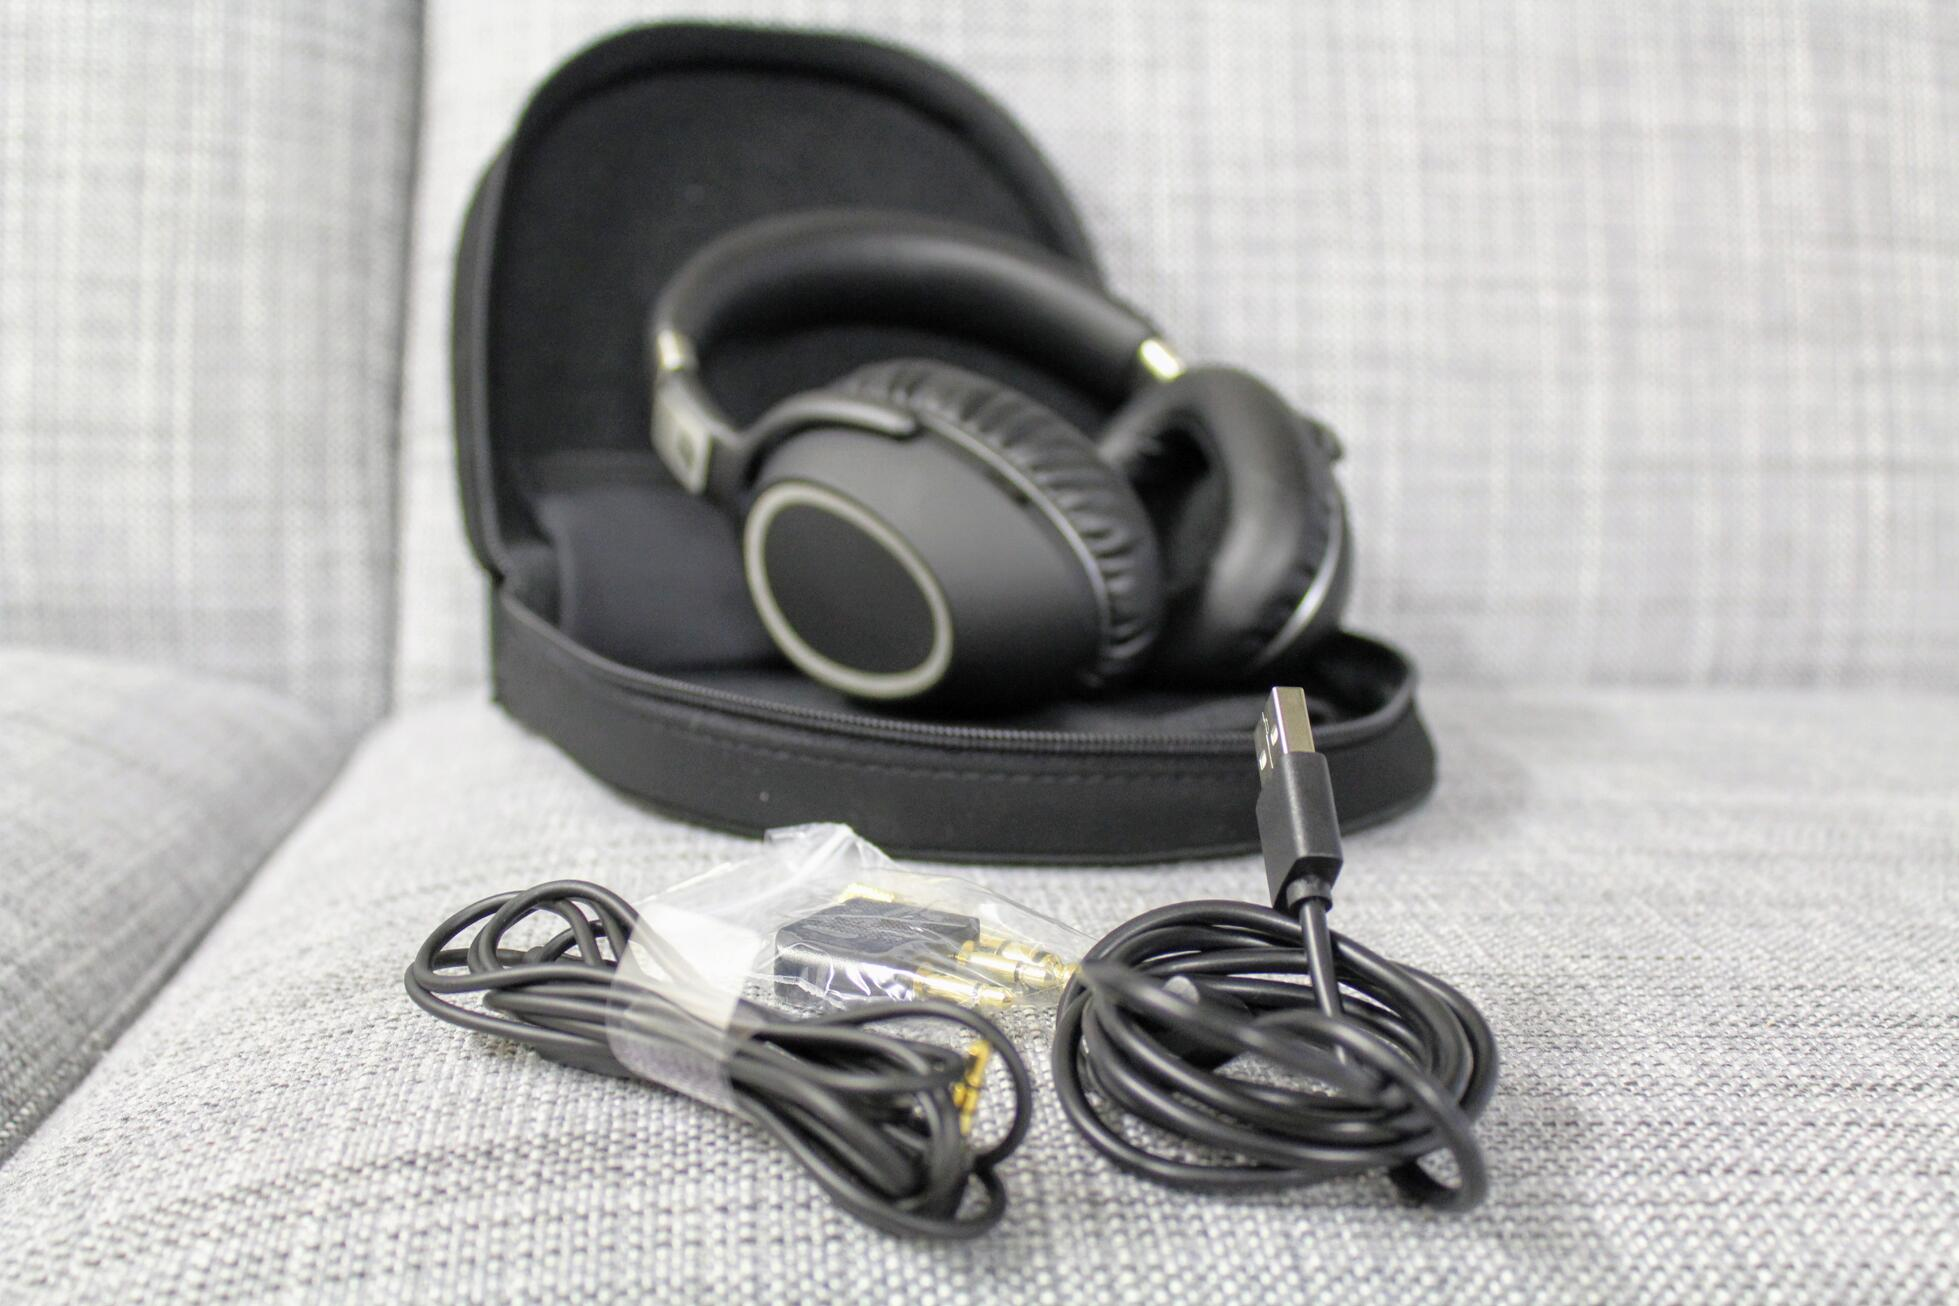 Review Sennheiser Hd 440 Bt Wireless 450 Btnc And Home Images Headset Wiring Facebook Twitter Google The Three Models Come With A 35mm Mini Jack To Interconnect Cable 14 M Micro Usb Carrying Case